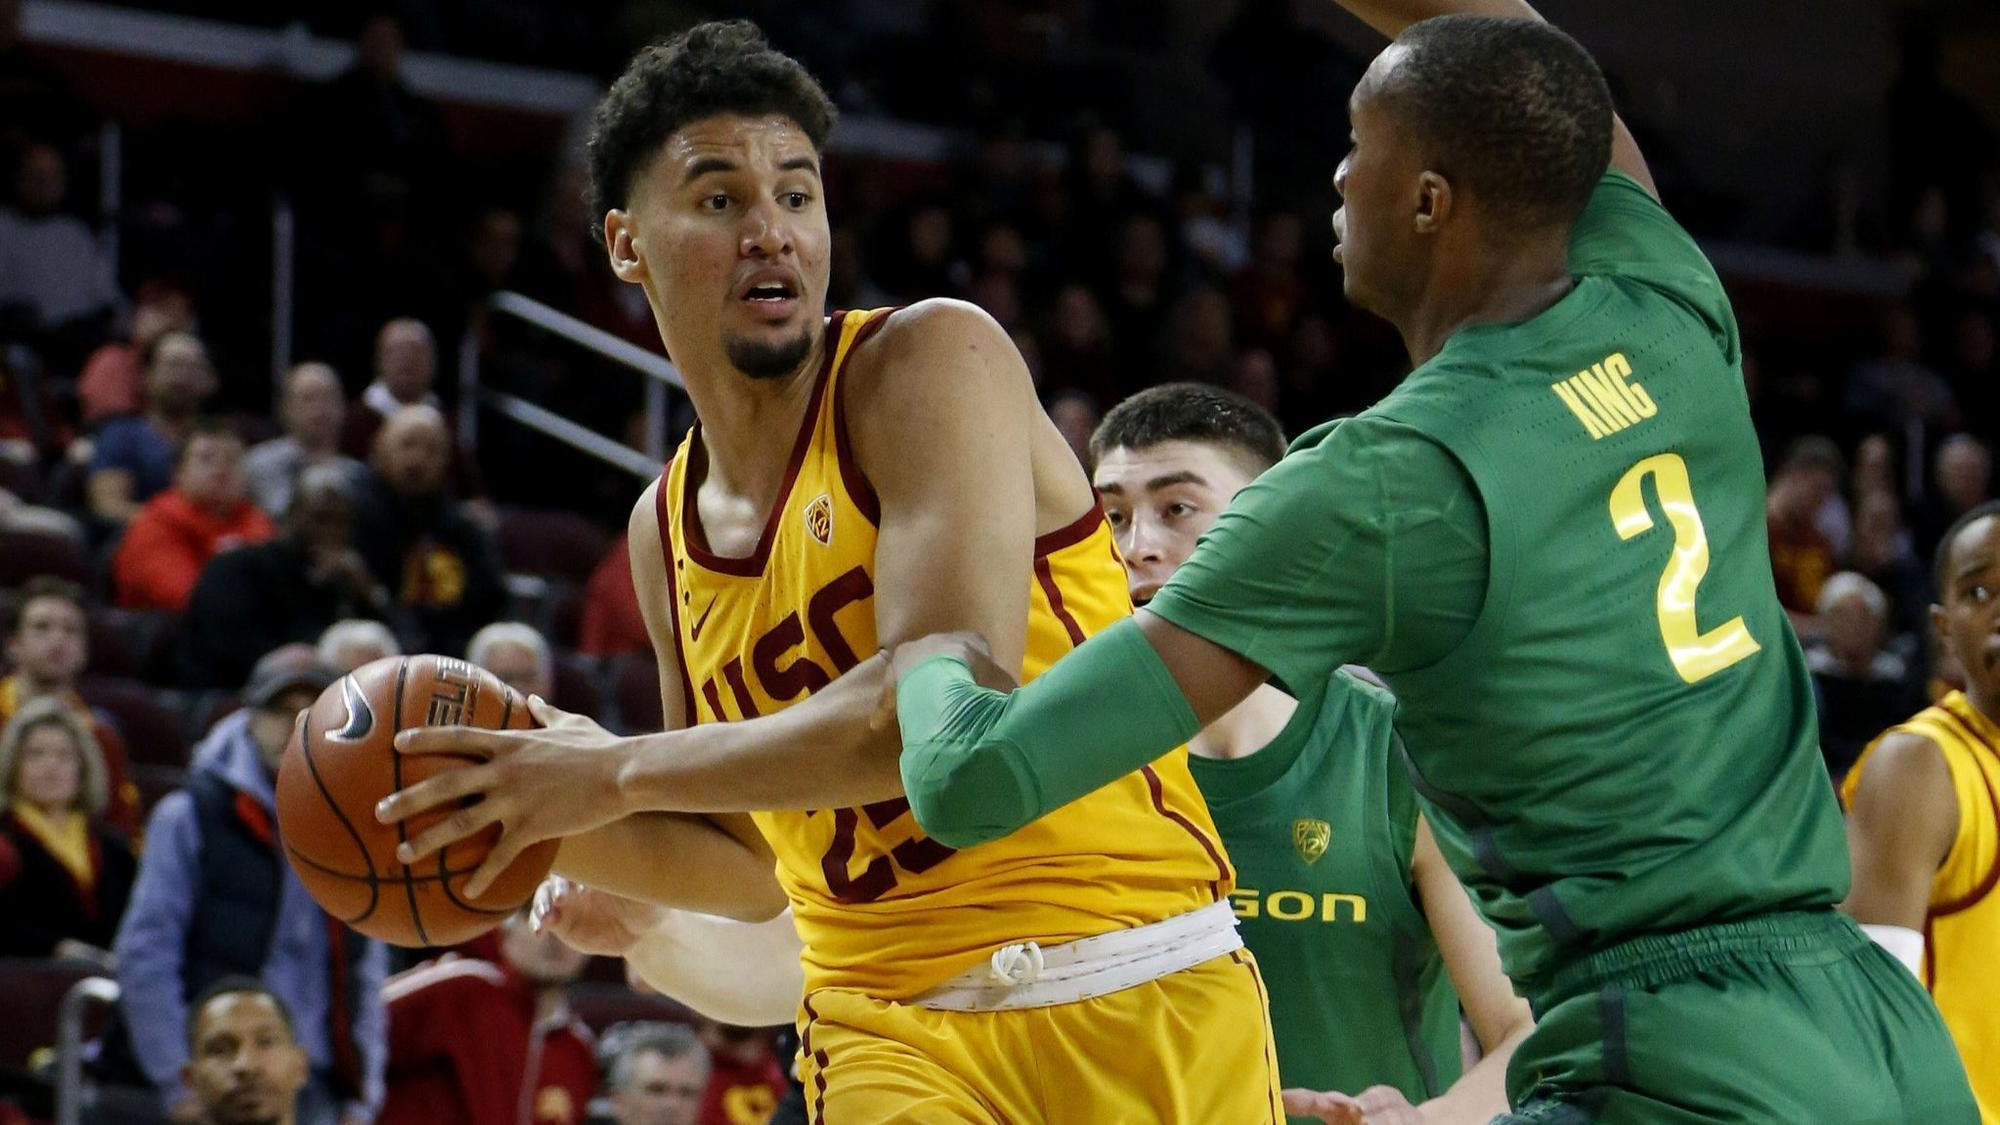 USC's Bennie Boatwright set to close out career at Galen Center and close in on mark